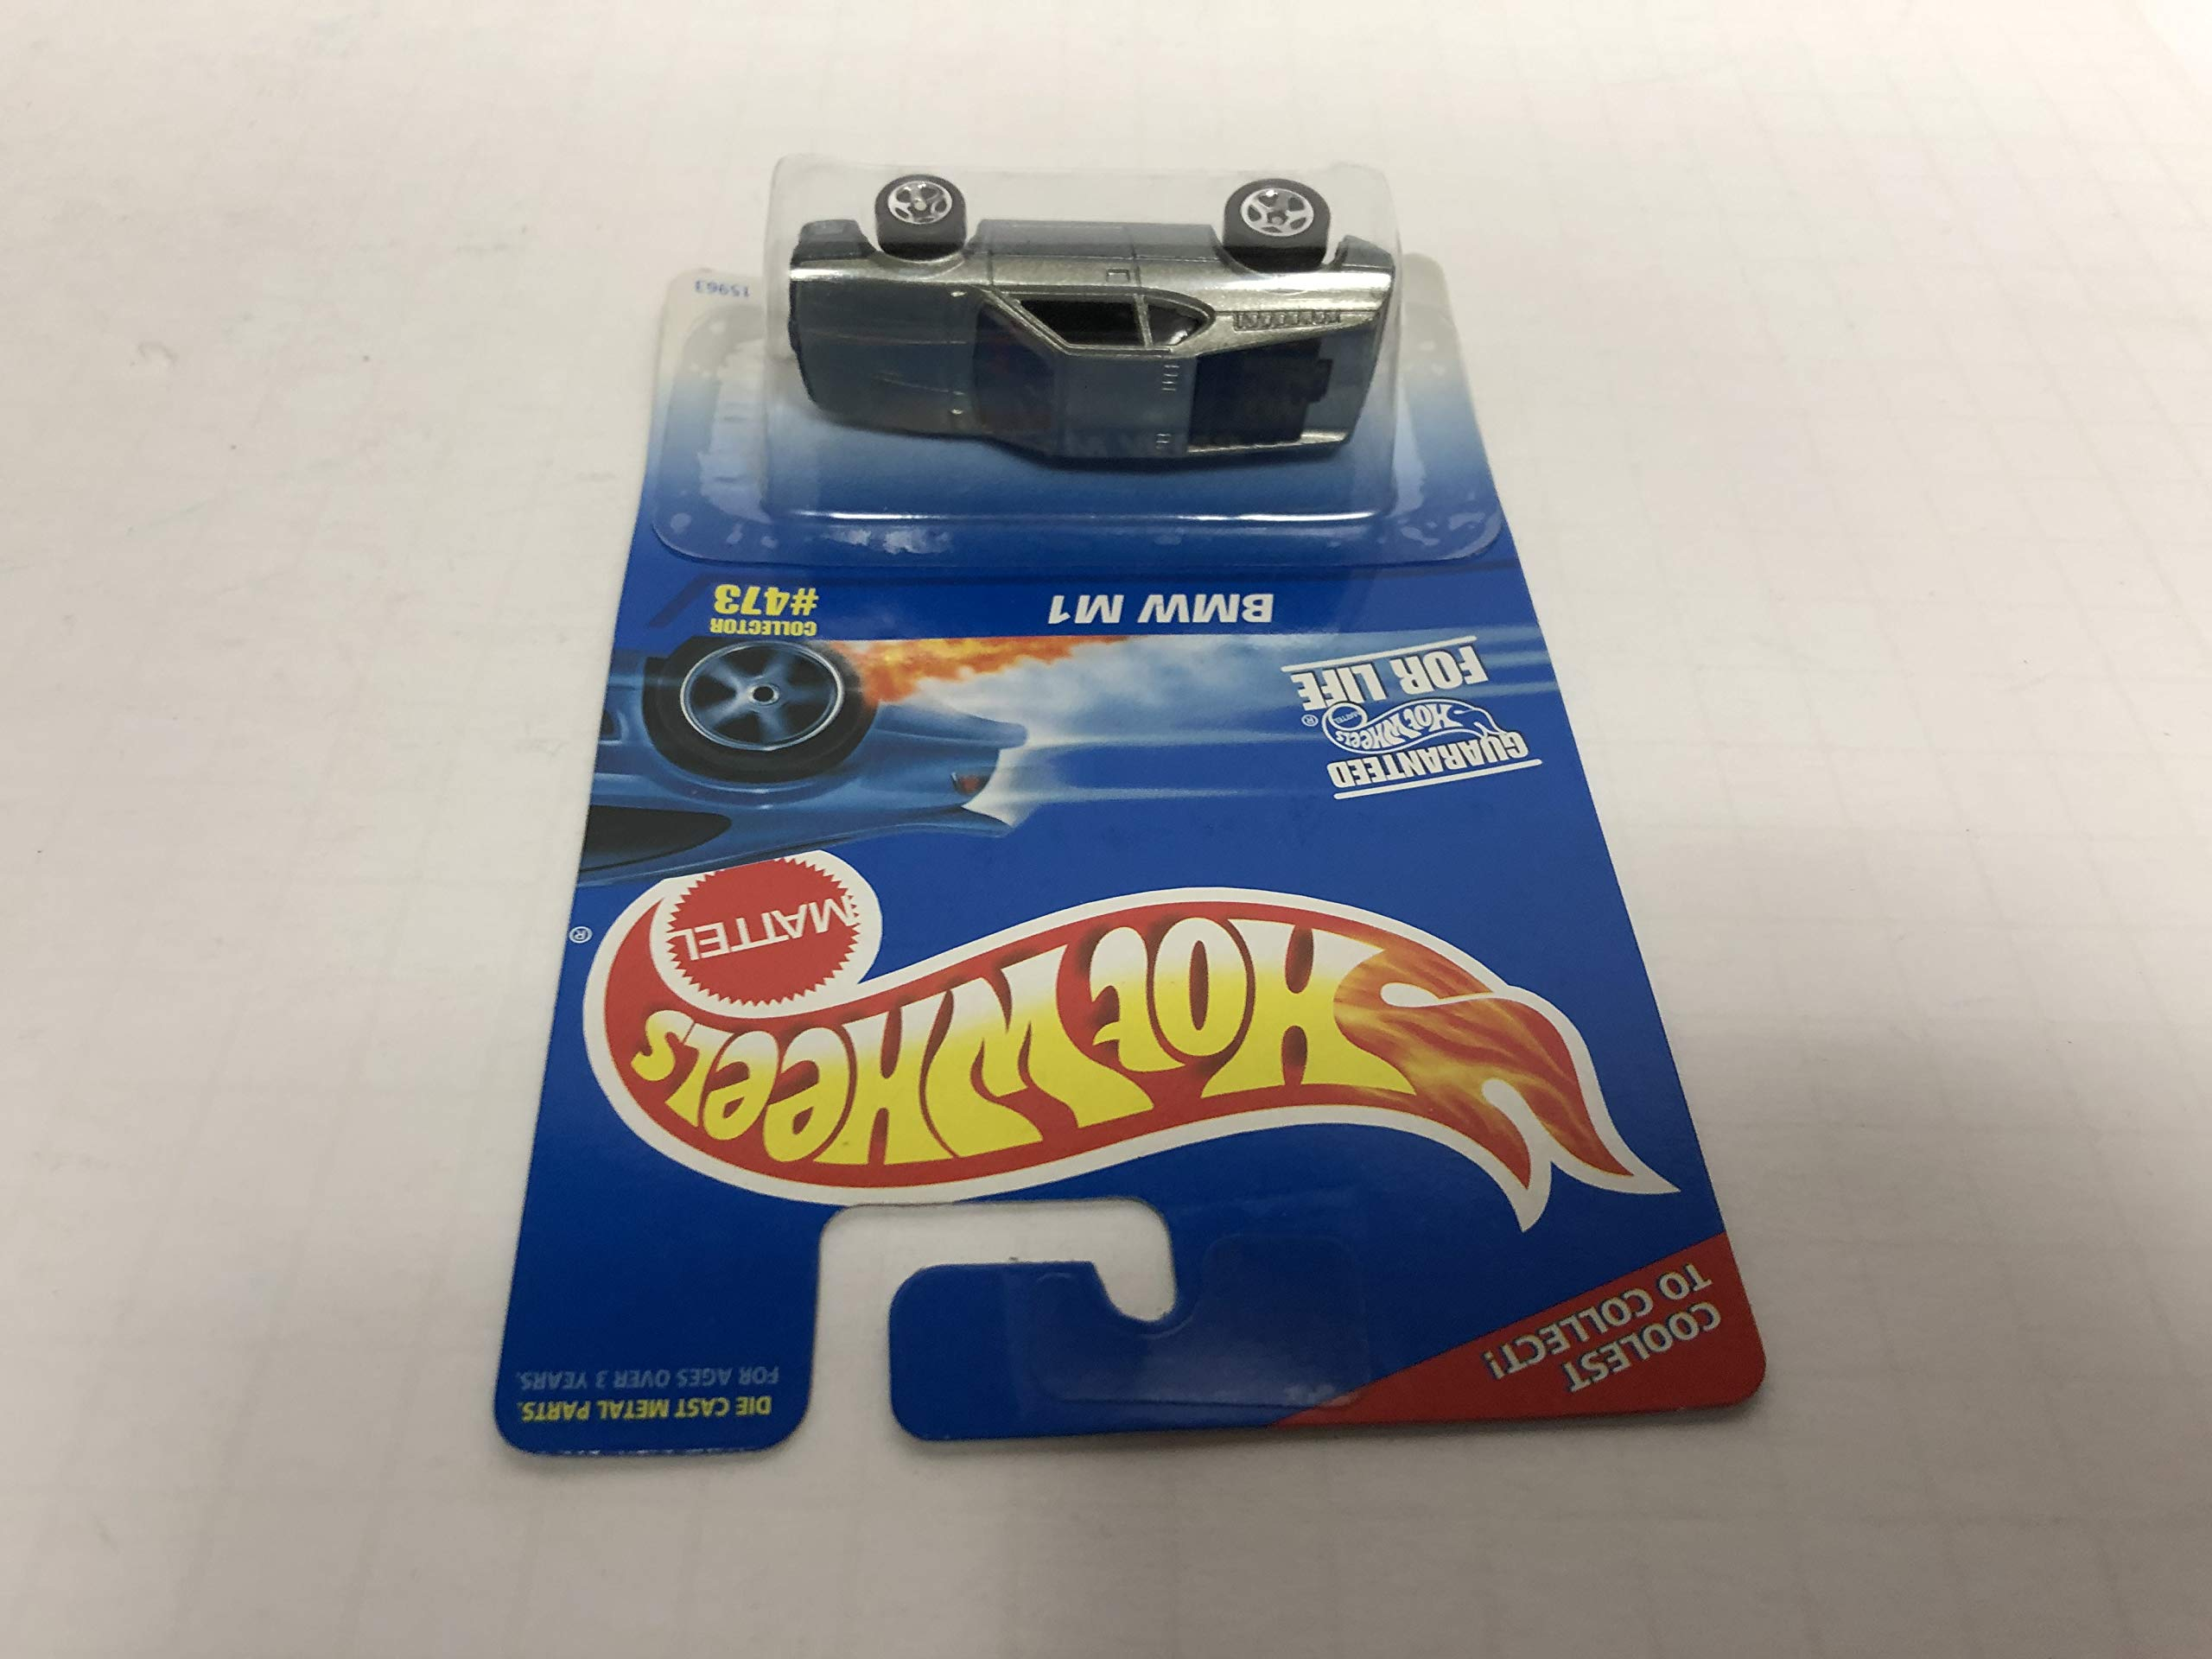 BMW M1 1996 Hot Wheels No. 473 diecast 1/64 scale car